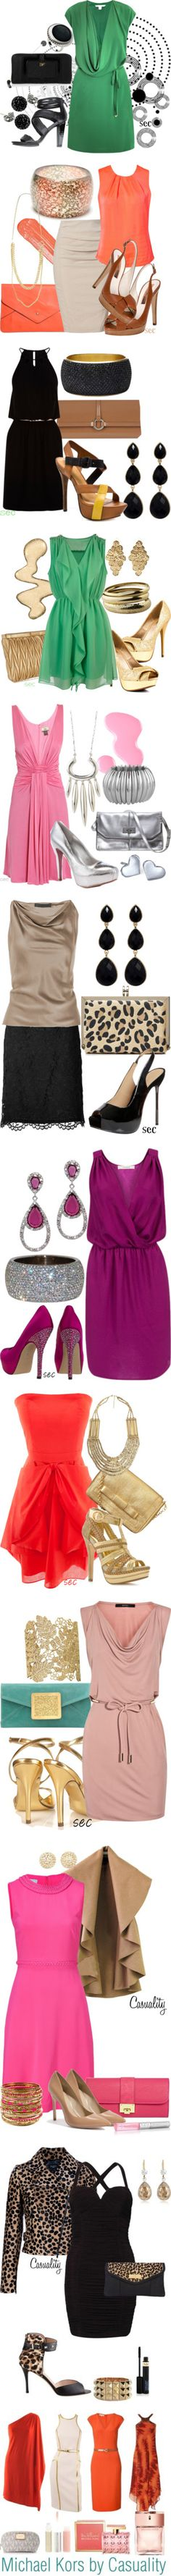 """All Dolled Up"" by encourager67 on Polyvore"